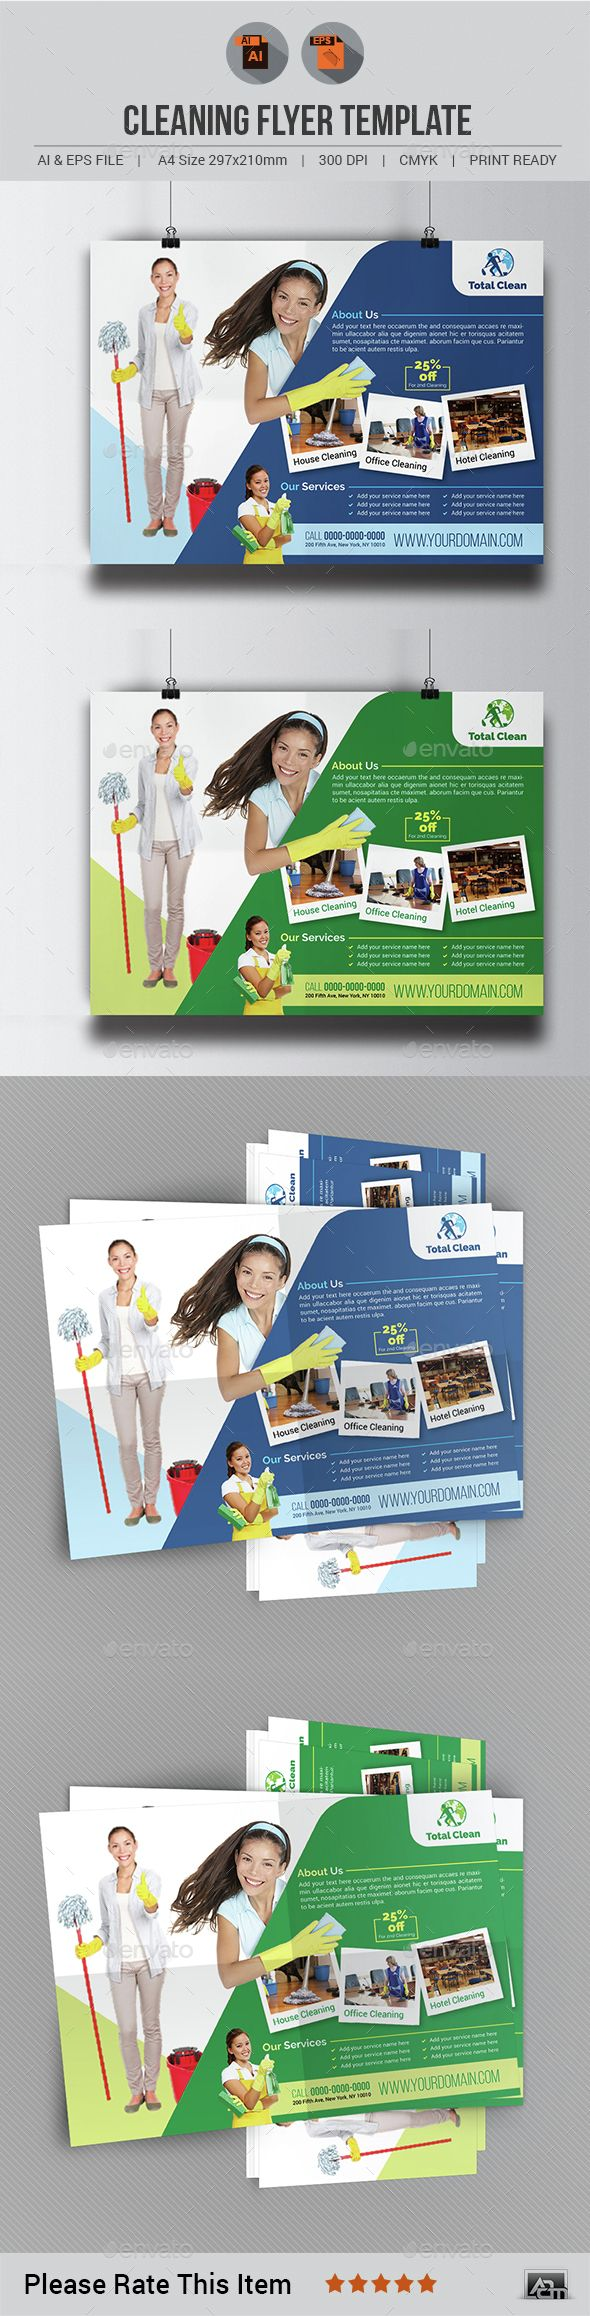 Cleaning Flyer Template V3 | Cleaning Services Print Templates ...